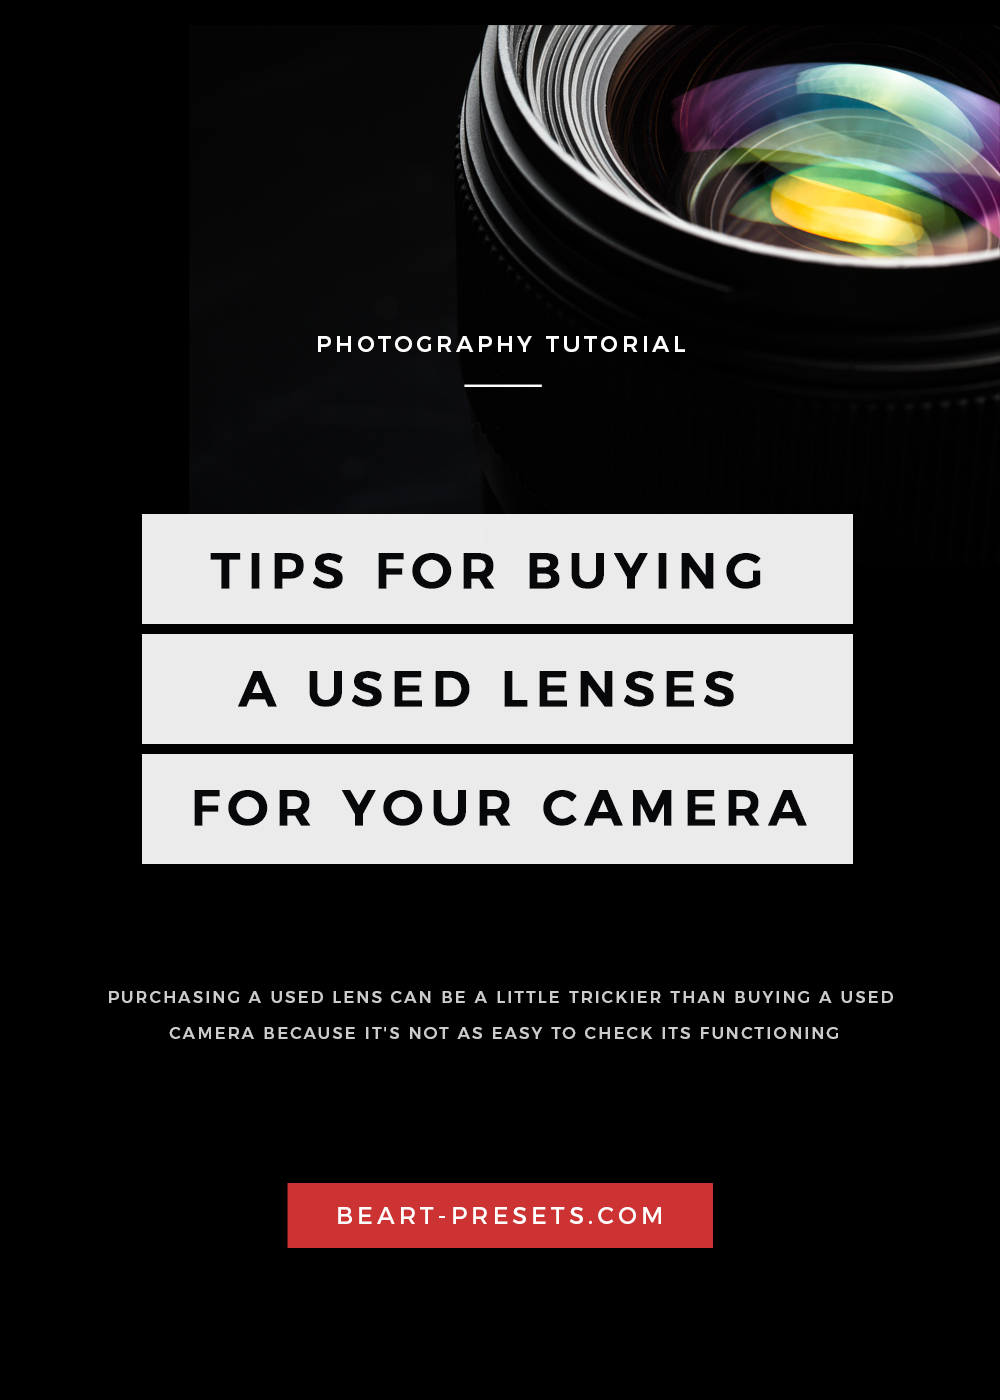 TIPS FOR BUYING A USED lenses